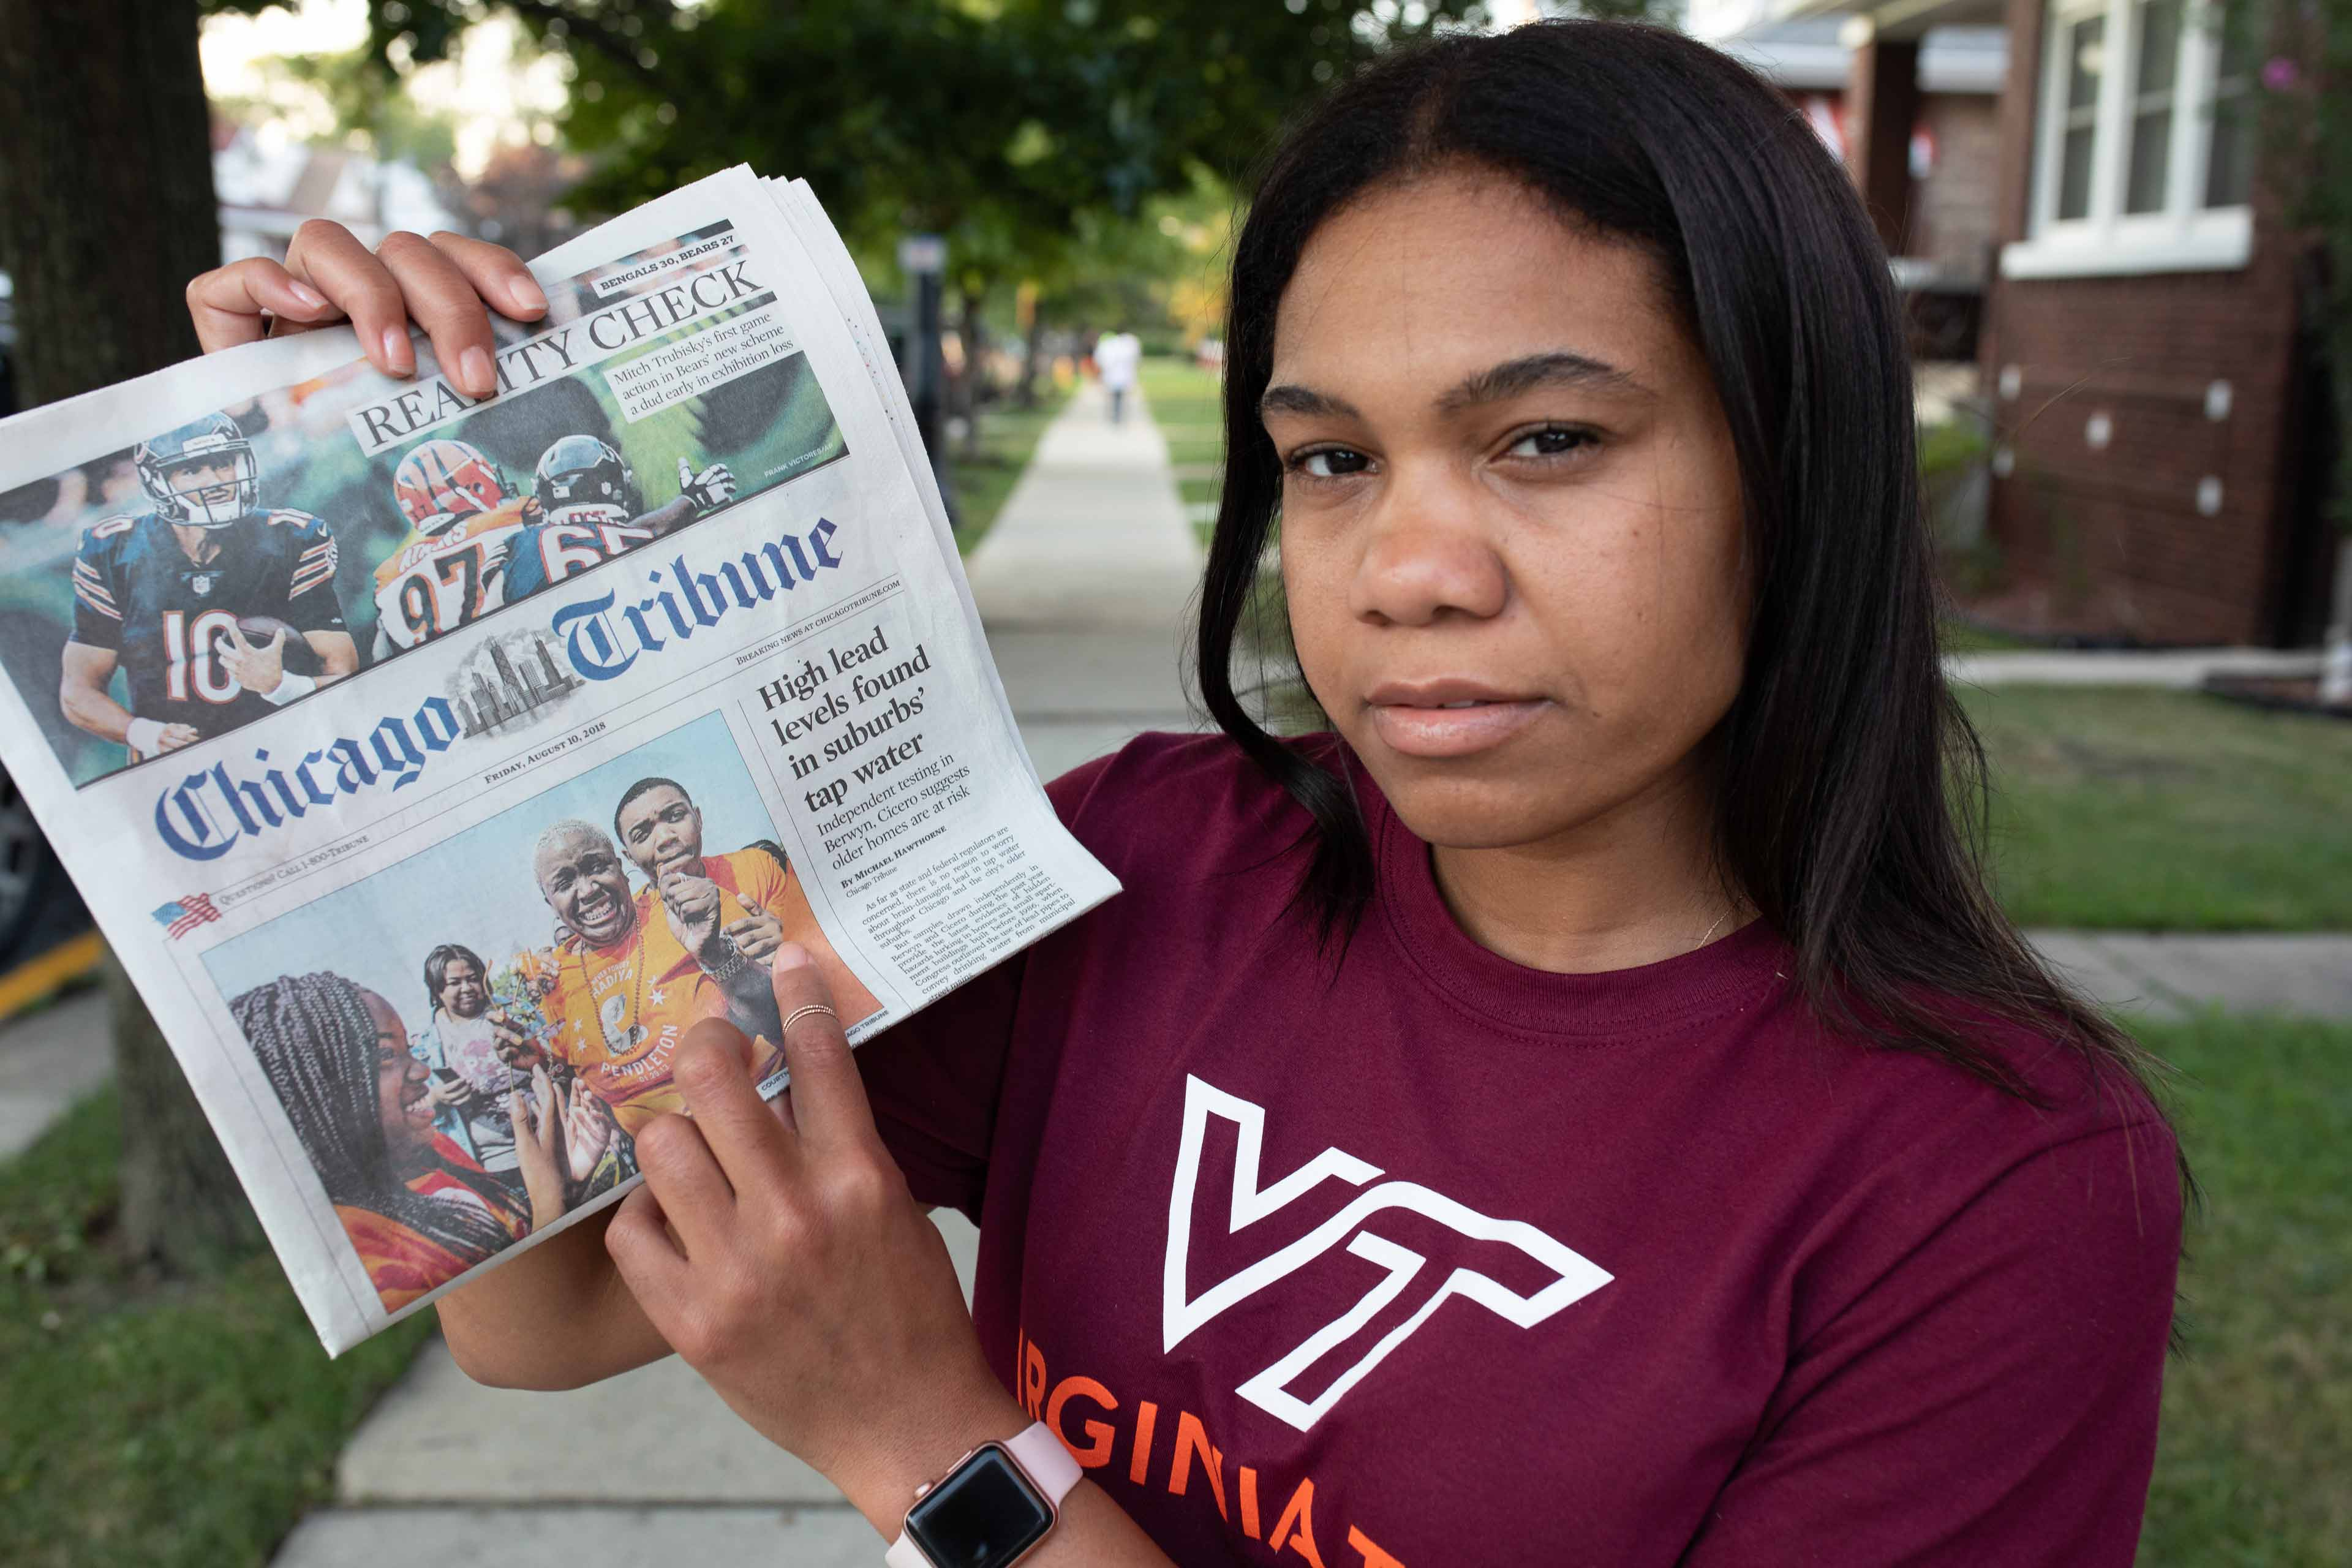 Chivonne Battle holding the Chicago Tribune with the water story on the cover.